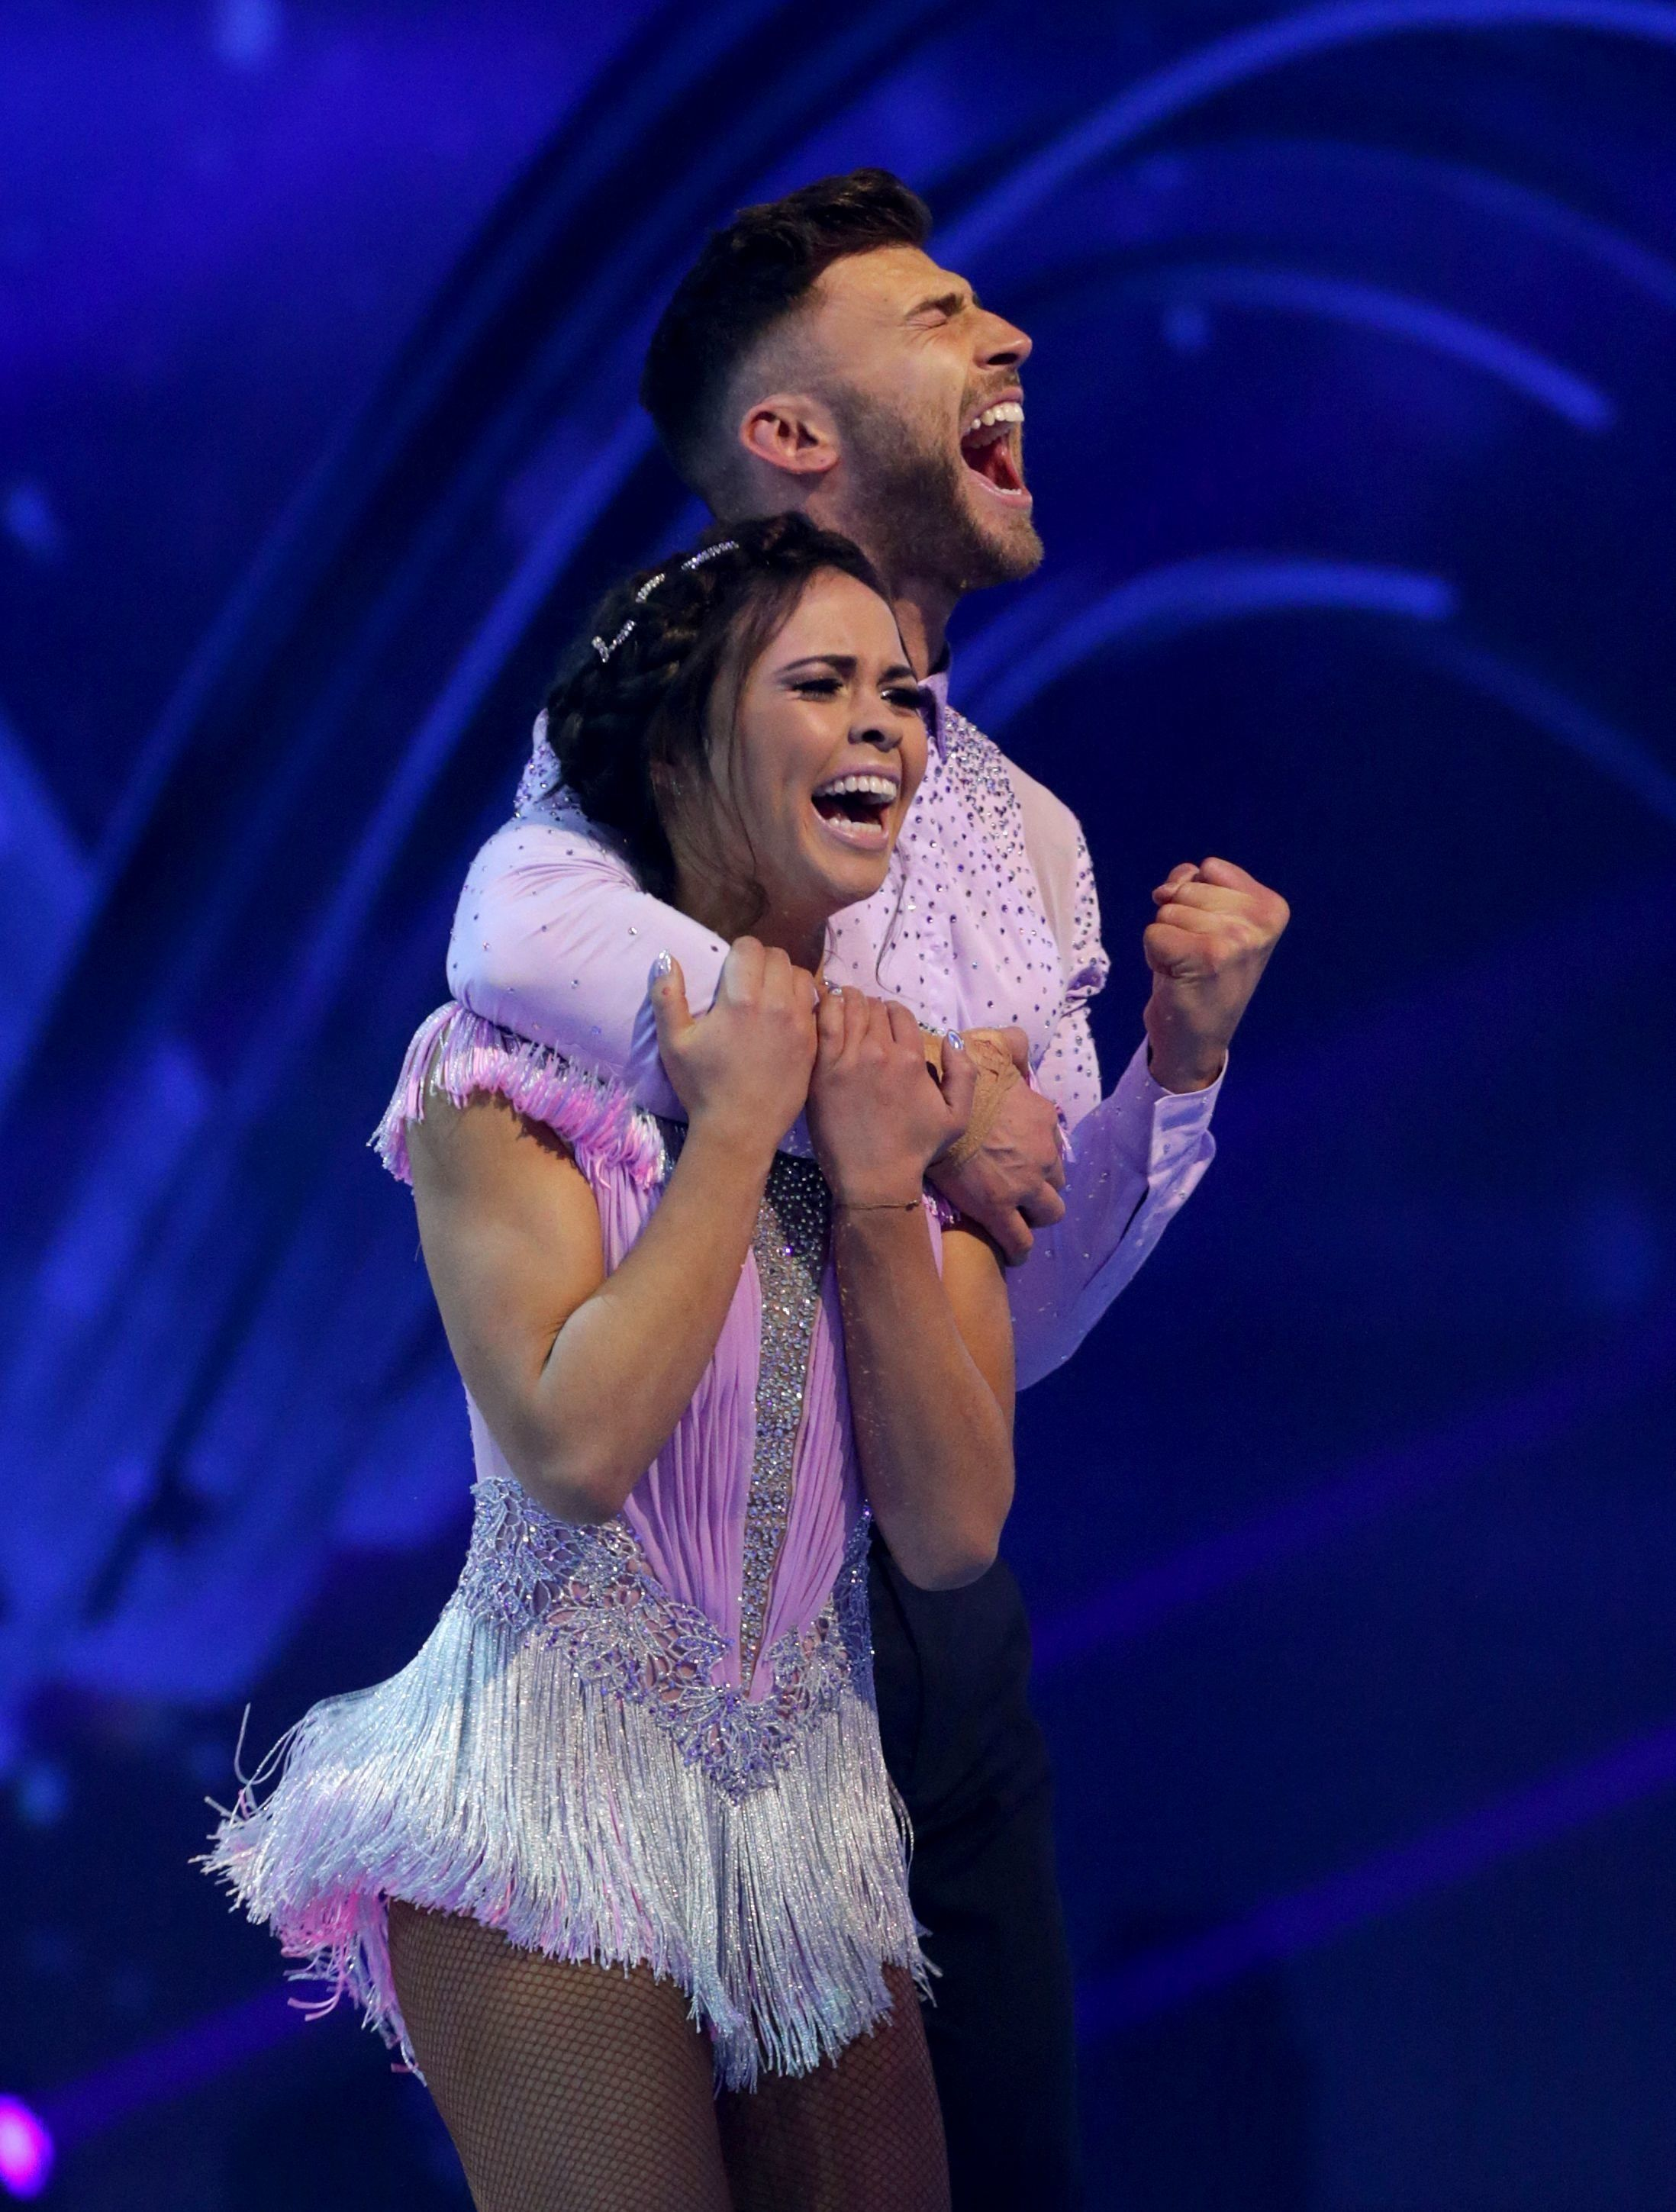 Jake Quickenden Jokes His Reality TV Days Are Behind Him As He Wins 'Dancing On Ice'